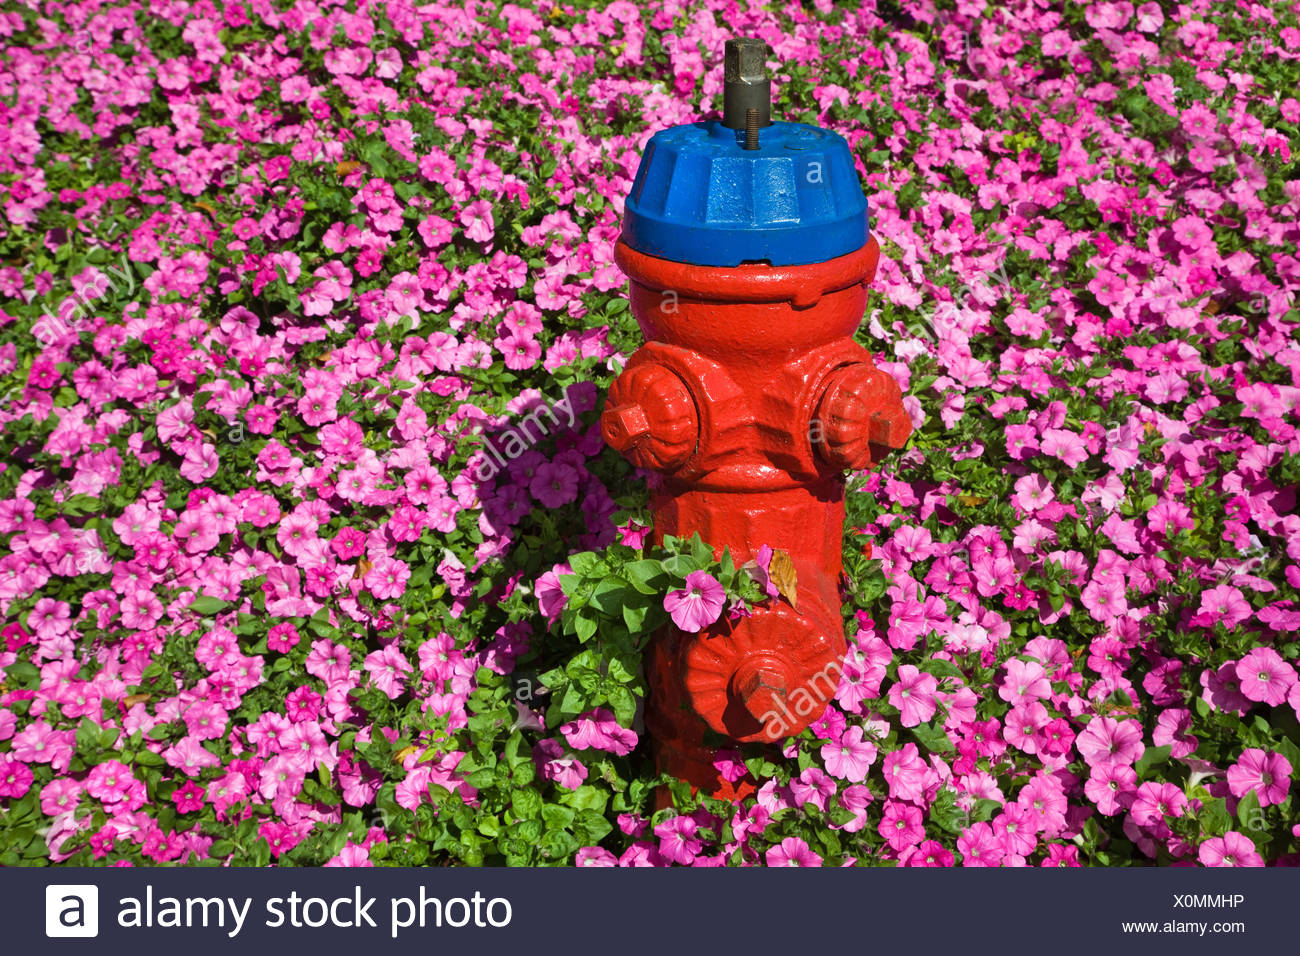 Fire hydrant and pink flowers - Stock Image